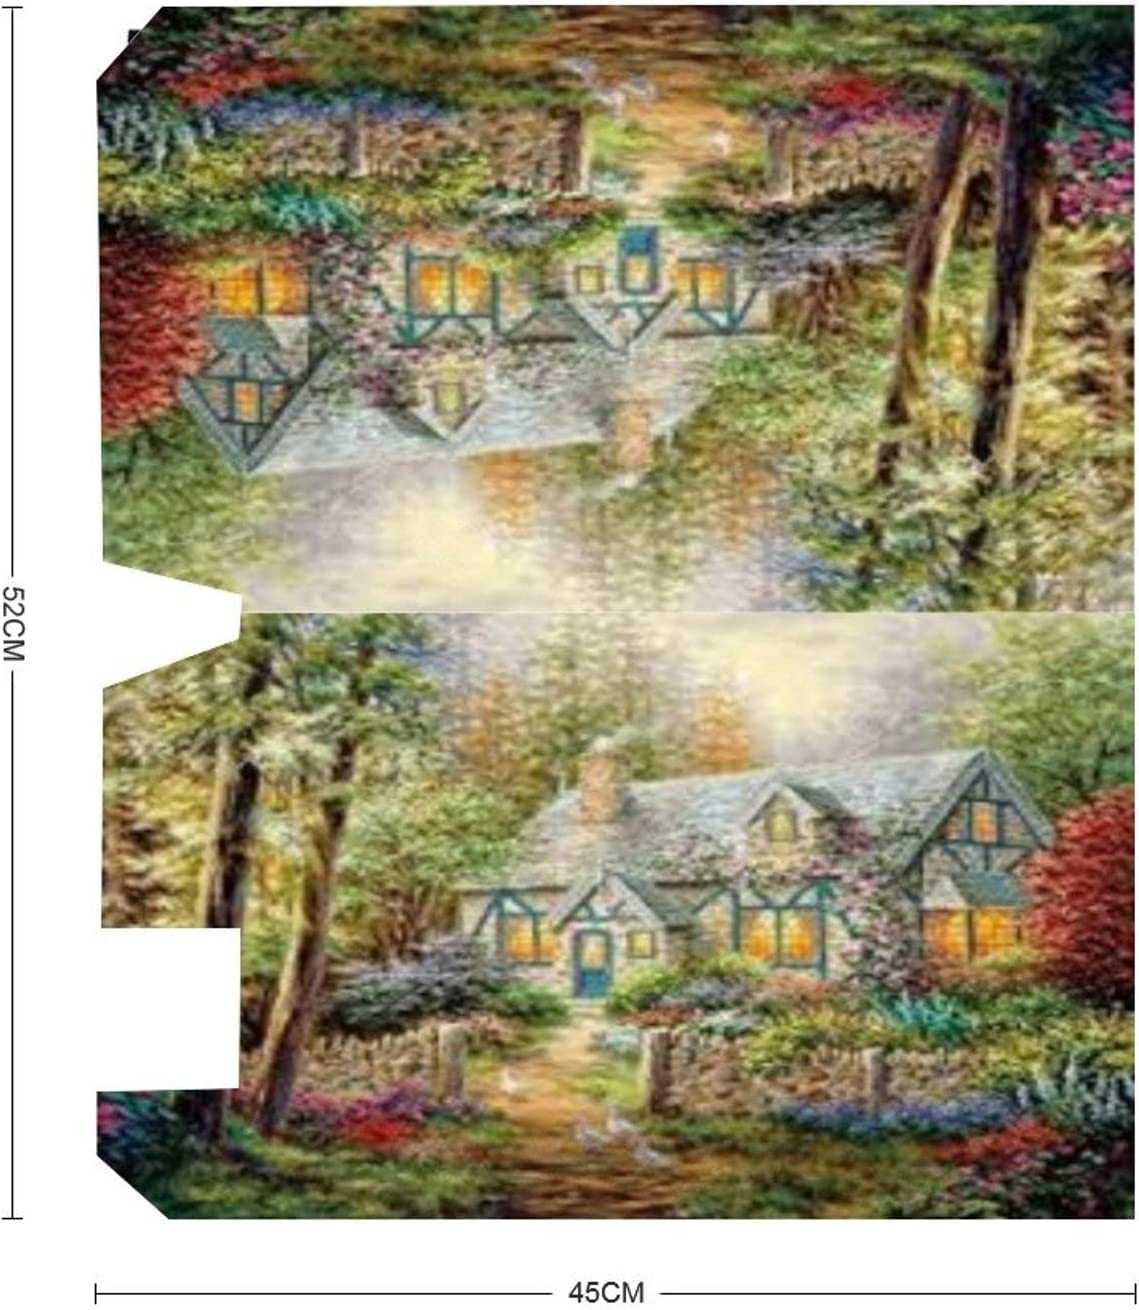 rfy9u7 Mailbox Wraps Lively Cabin with Many Plants Magnetic Mail Cover Letter Post Box Cover Decor Decal 18x21